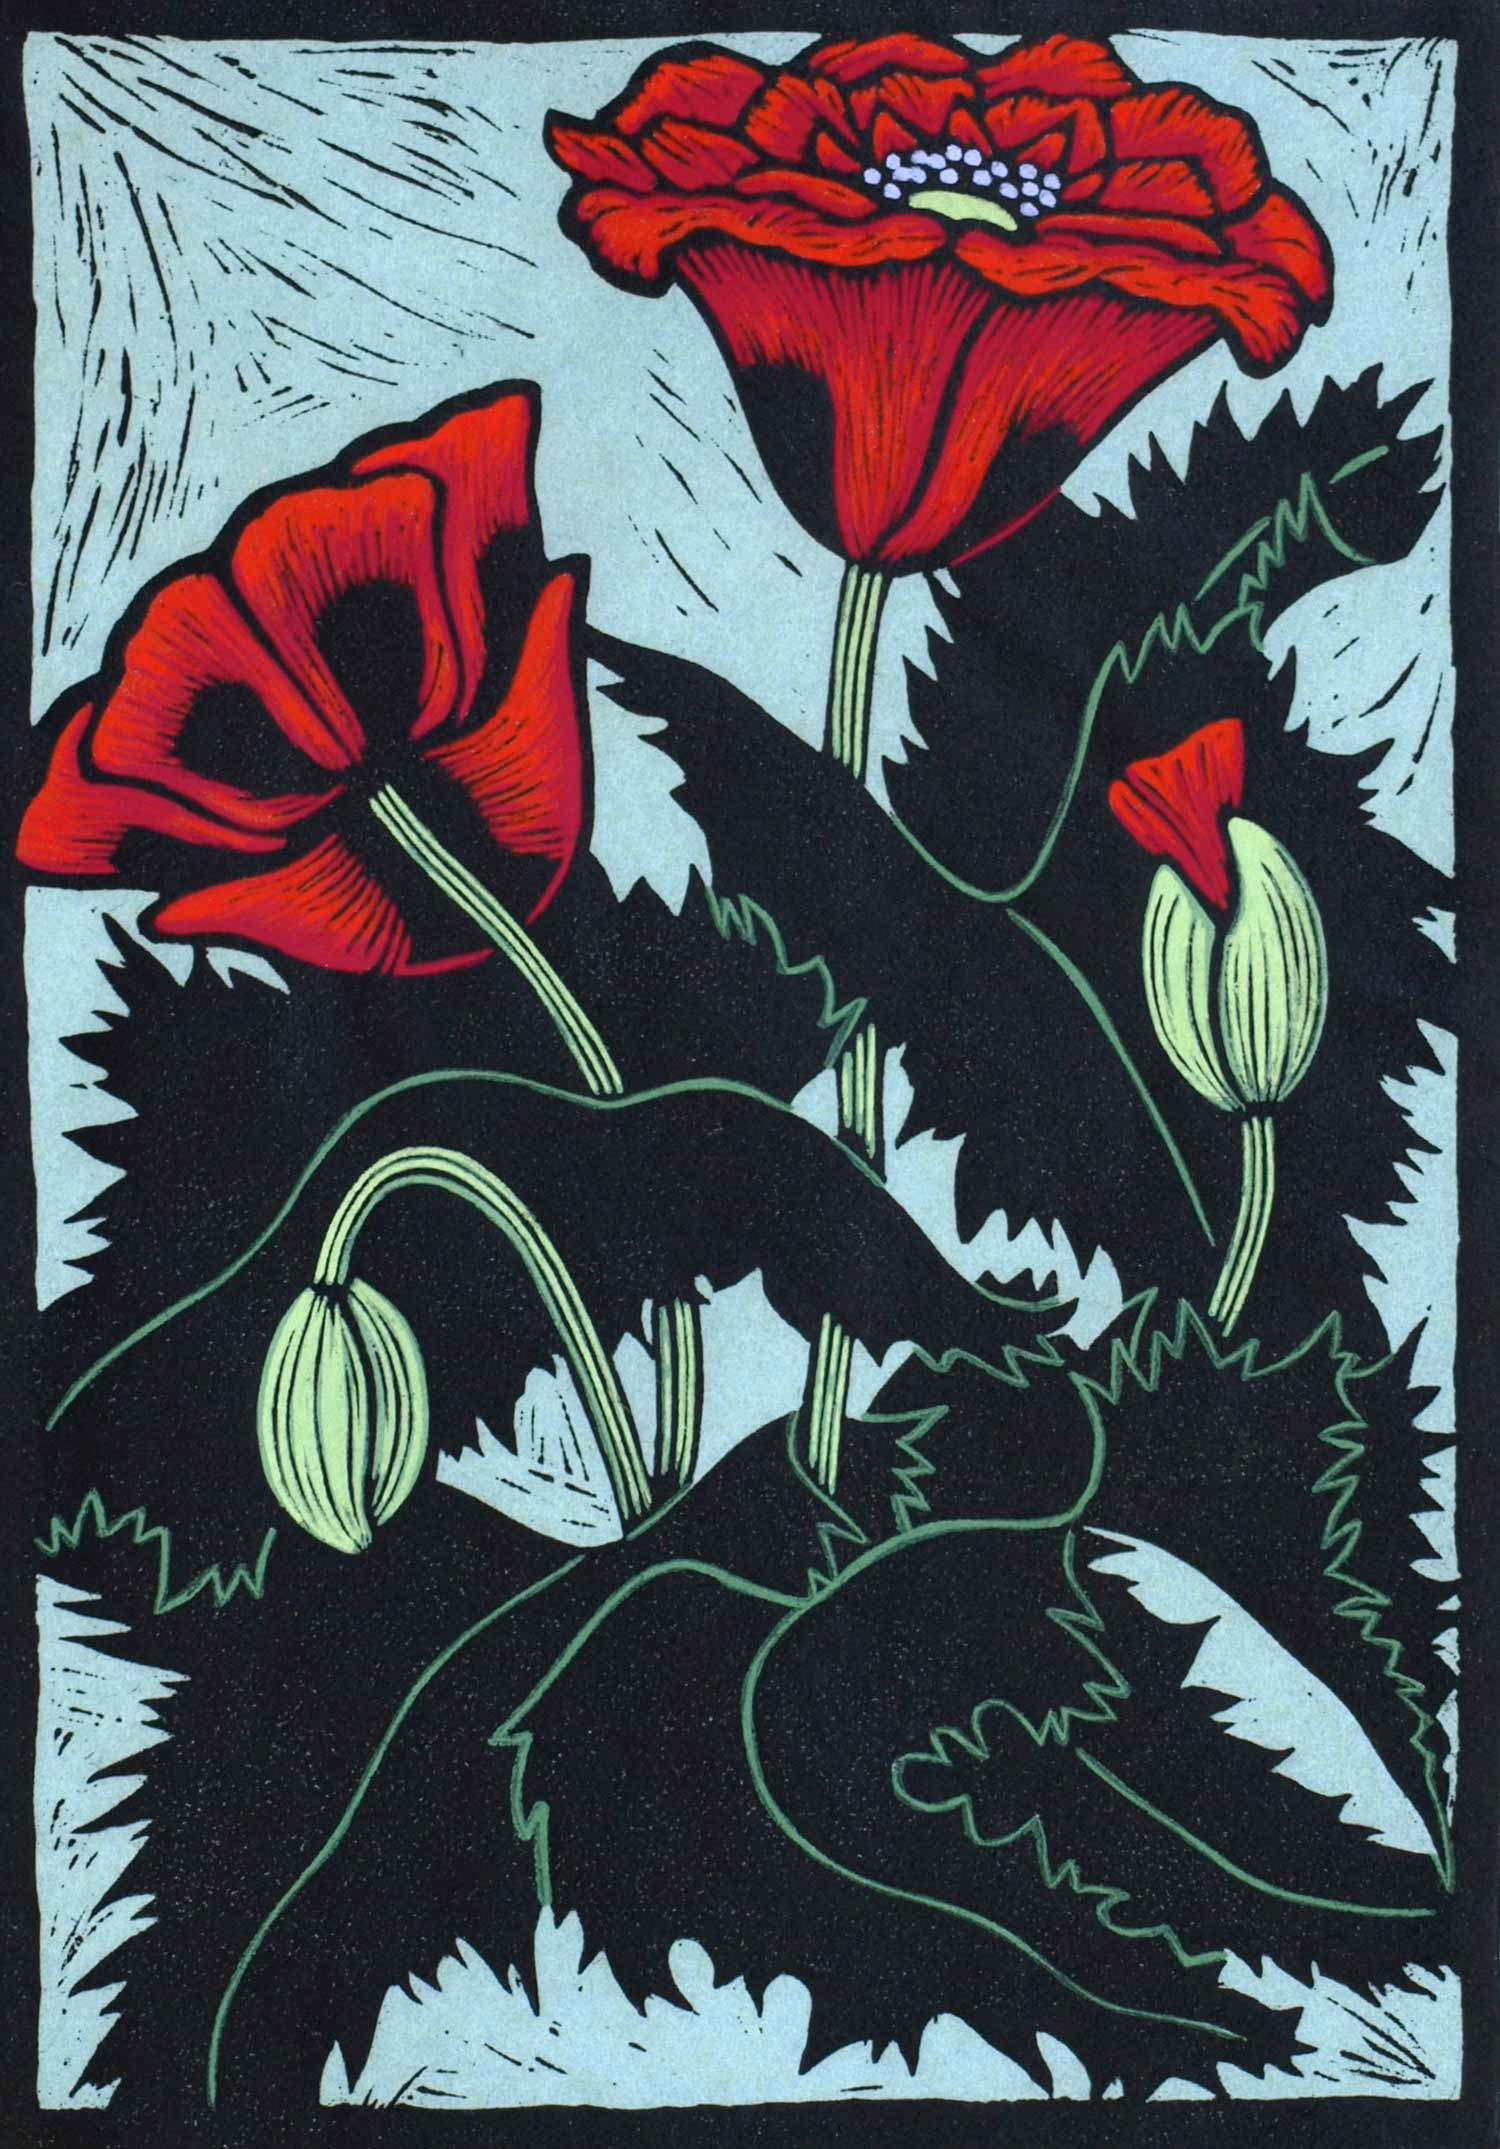 POPPY  25 X 17.5 CM, EDITION OF 50  HAND-COLOURED LINOCUT ON HANDMADE JAPANESE PAPER $600